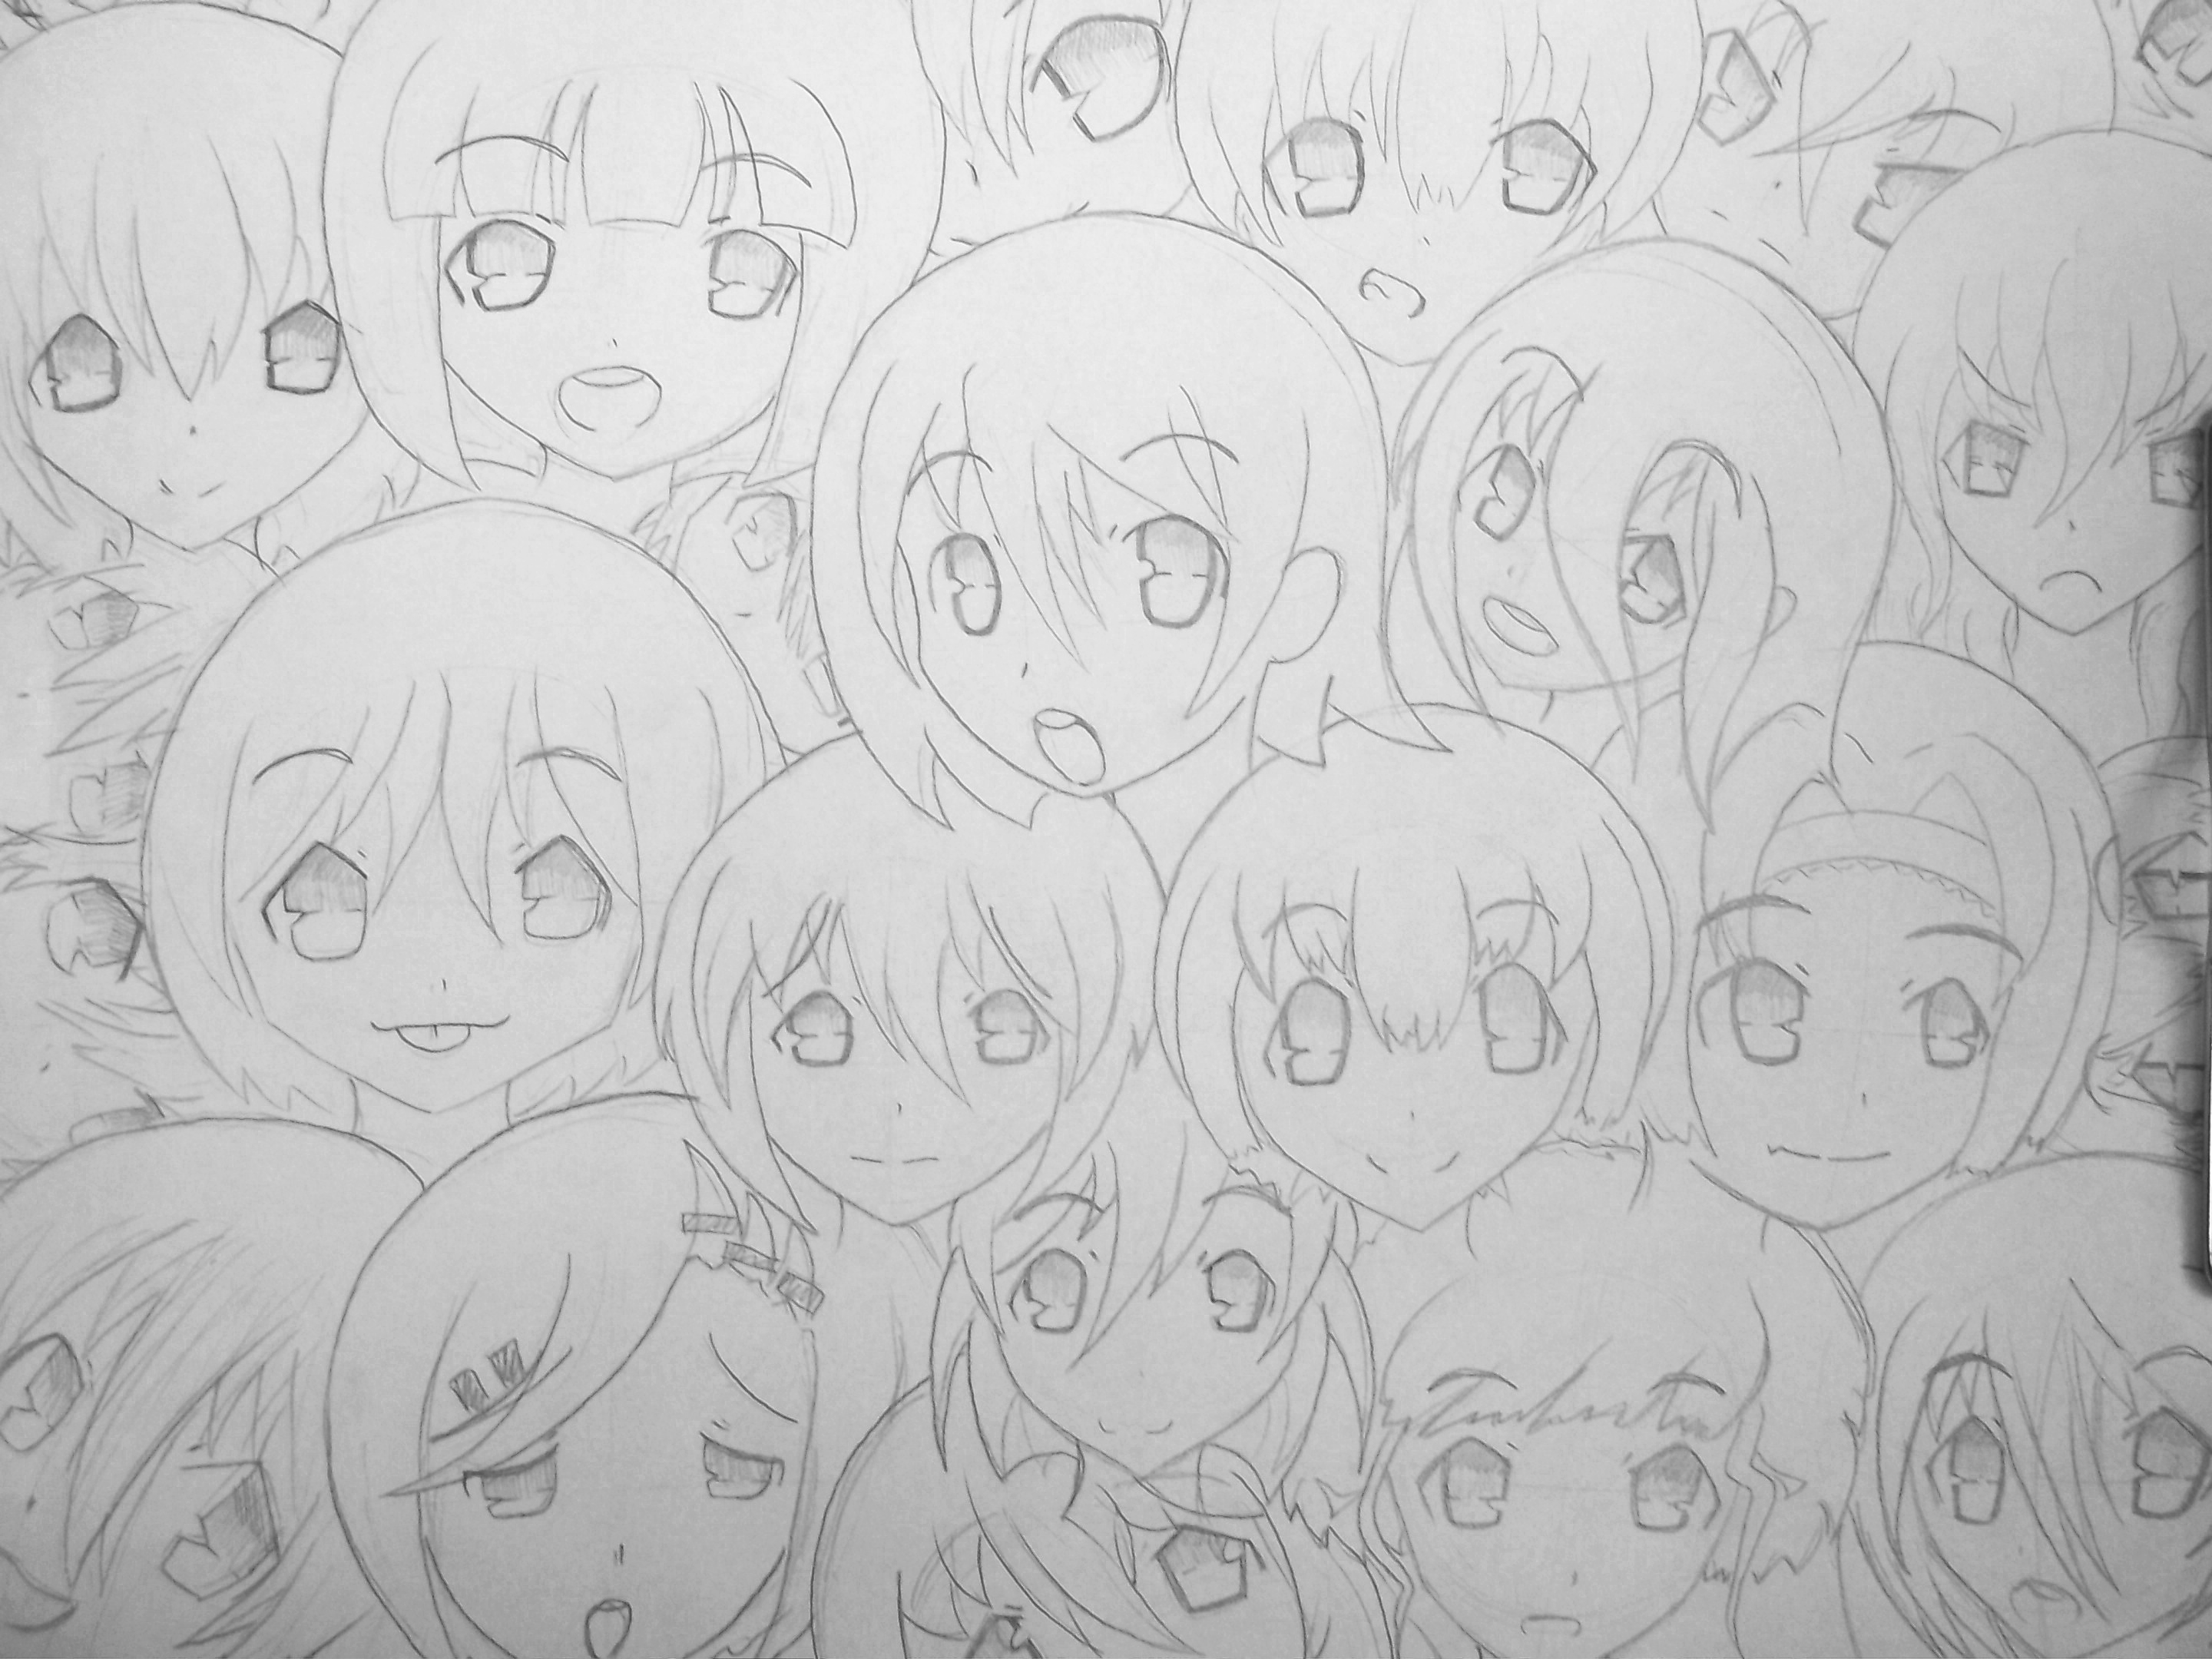 Face Overload 03